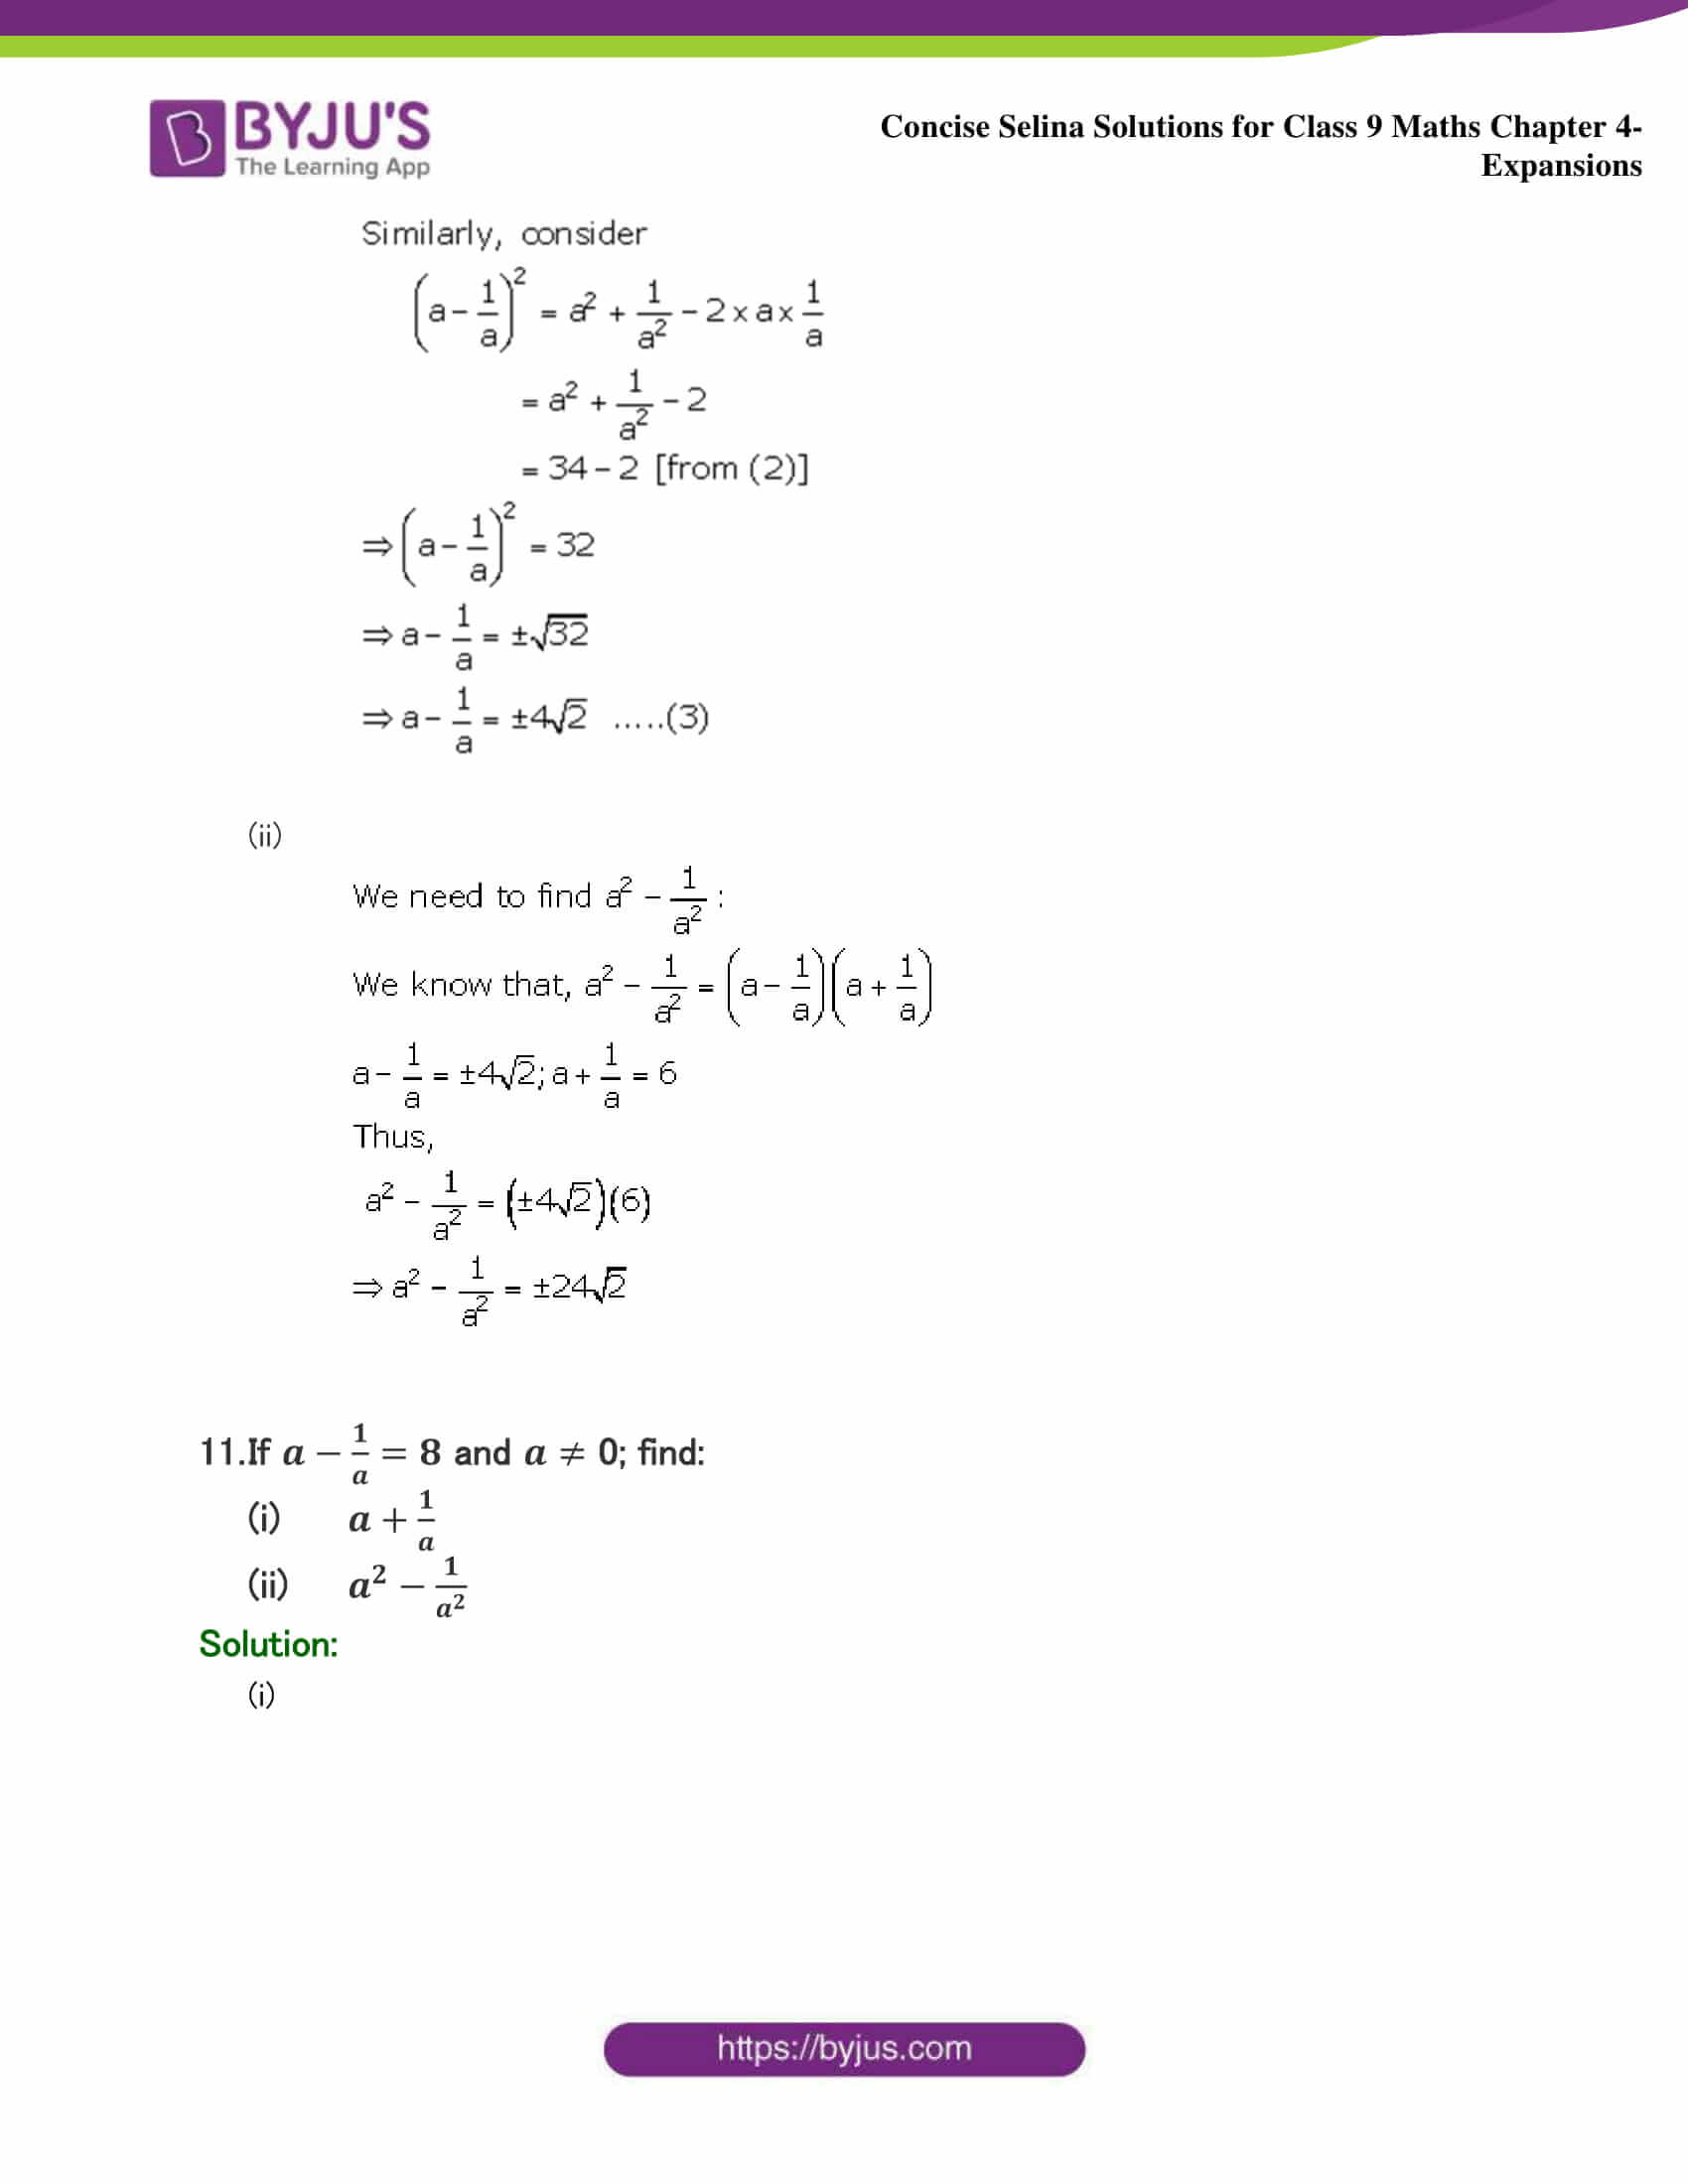 Selina Solutions Class 9 Maths Chapter 4 Expansions part 10